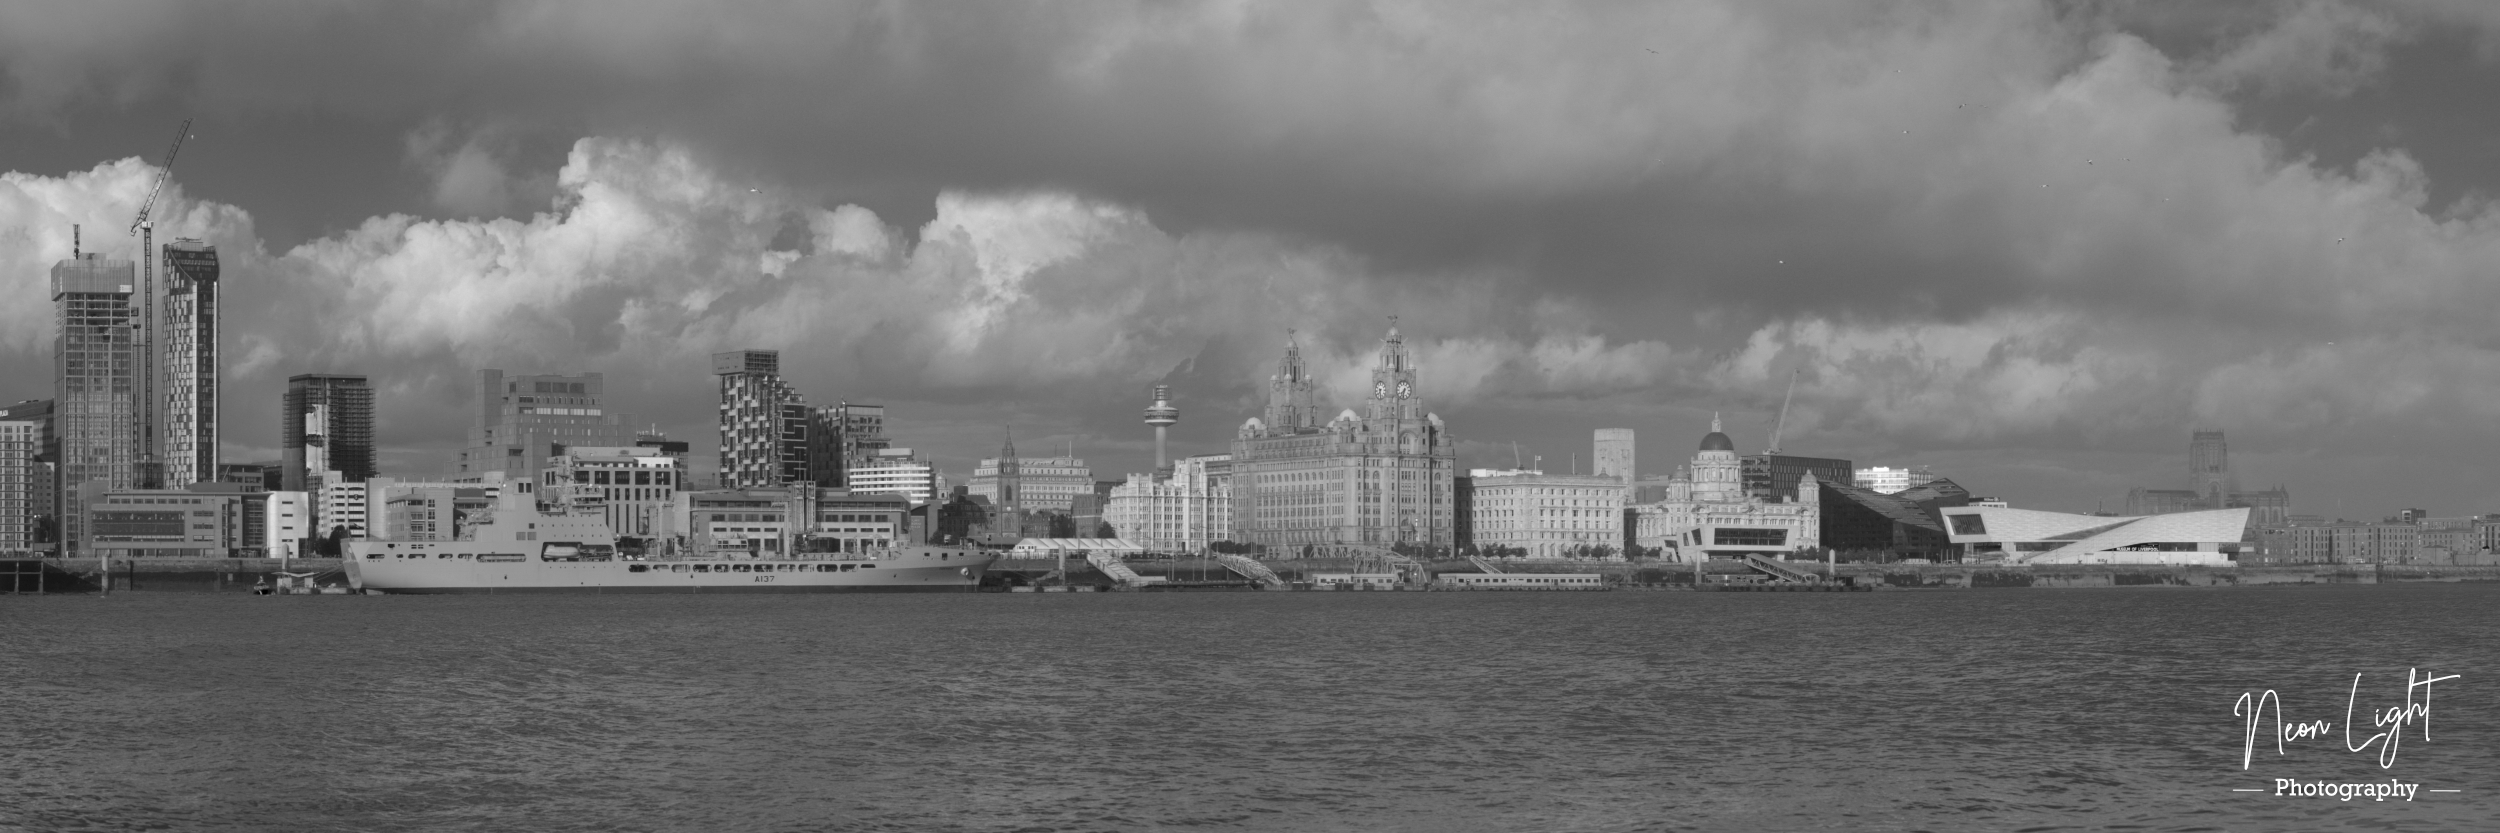 Black and White Liverpool Skyline